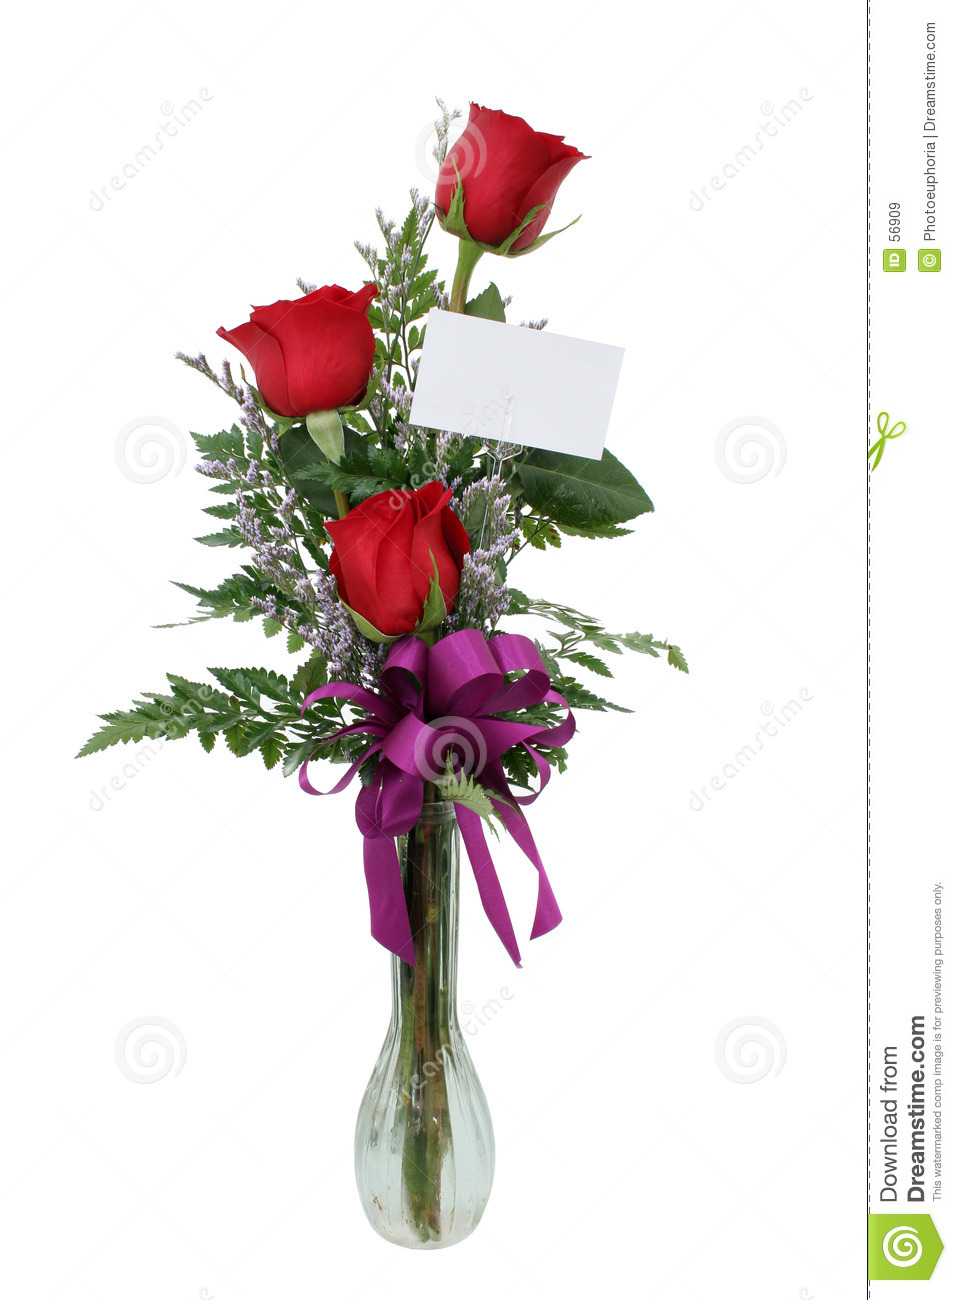 Download Roses Avec La Carte De Cadeau (image 8.2mp) Image stock - Image du glace, isolat: 56909